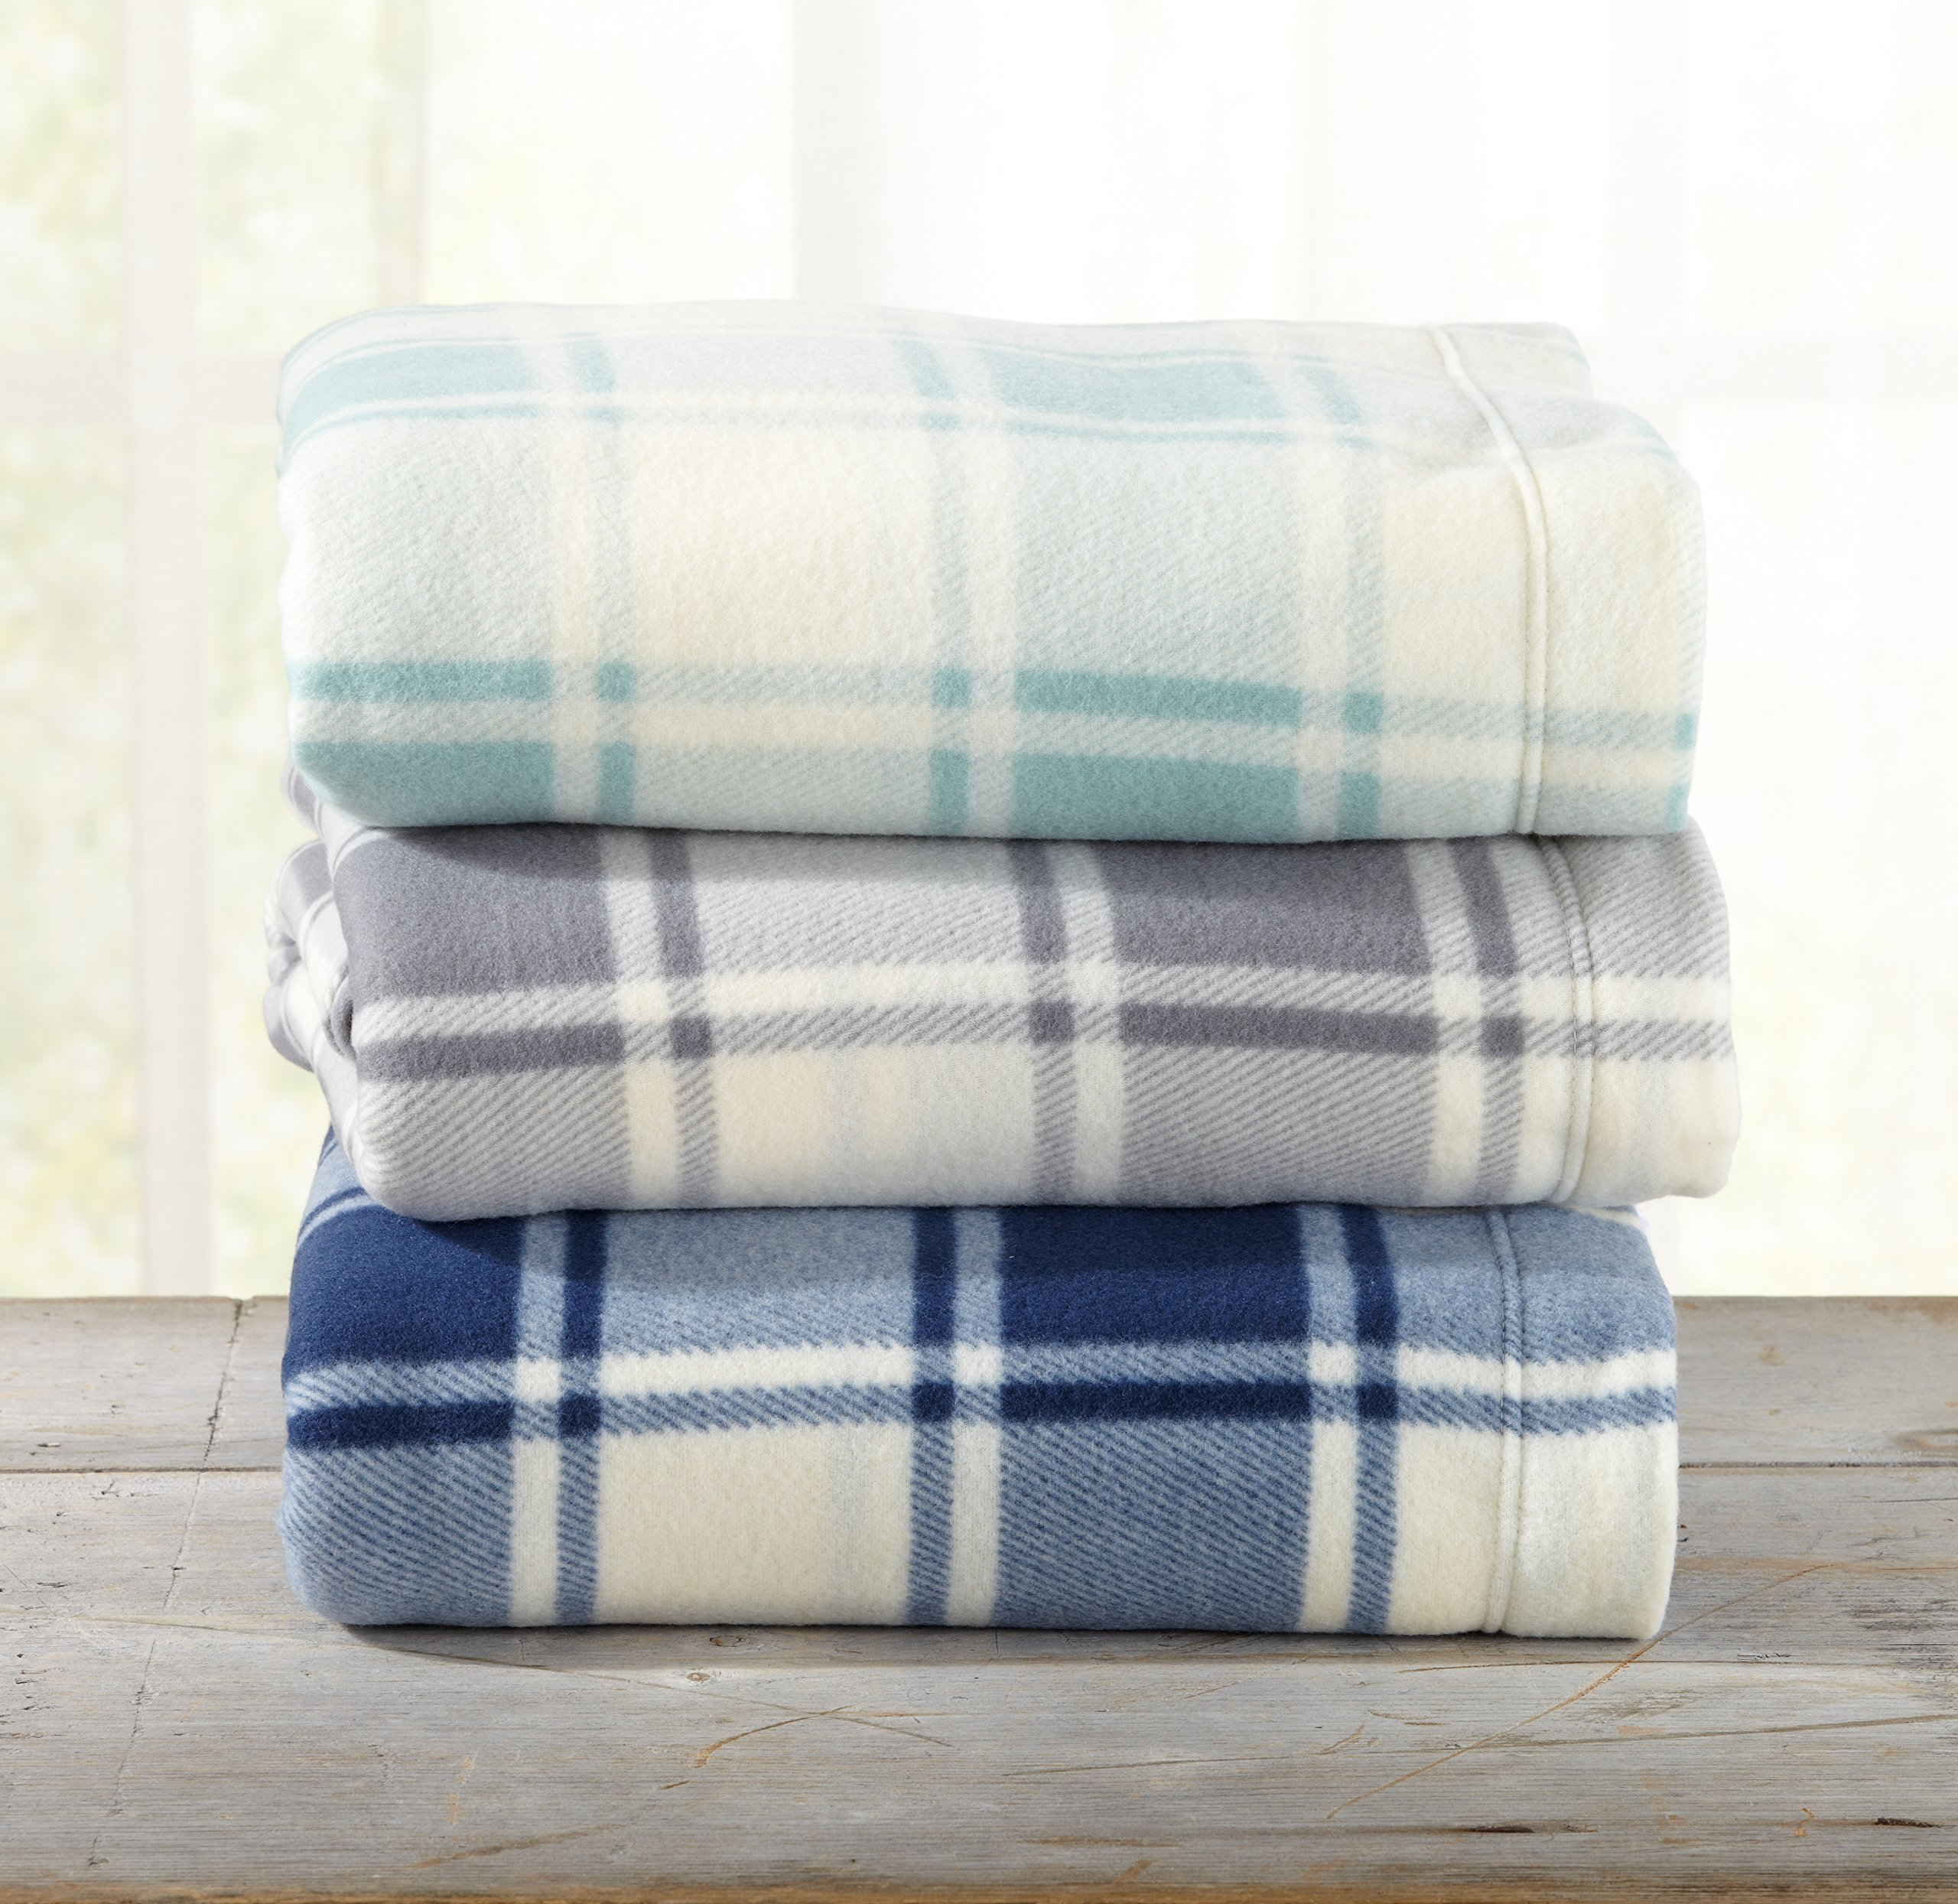 Great Bay Home Super Soft Extra Plush Plaid Polar Fleece Sheet Set. Cozy, Warm, Durable, Smooth, Breathable Winter Sheets with Plaid Pattern. Dara Collection By Brand. (Queen, Harbor Blue) by Great Bay Home (Image #3)